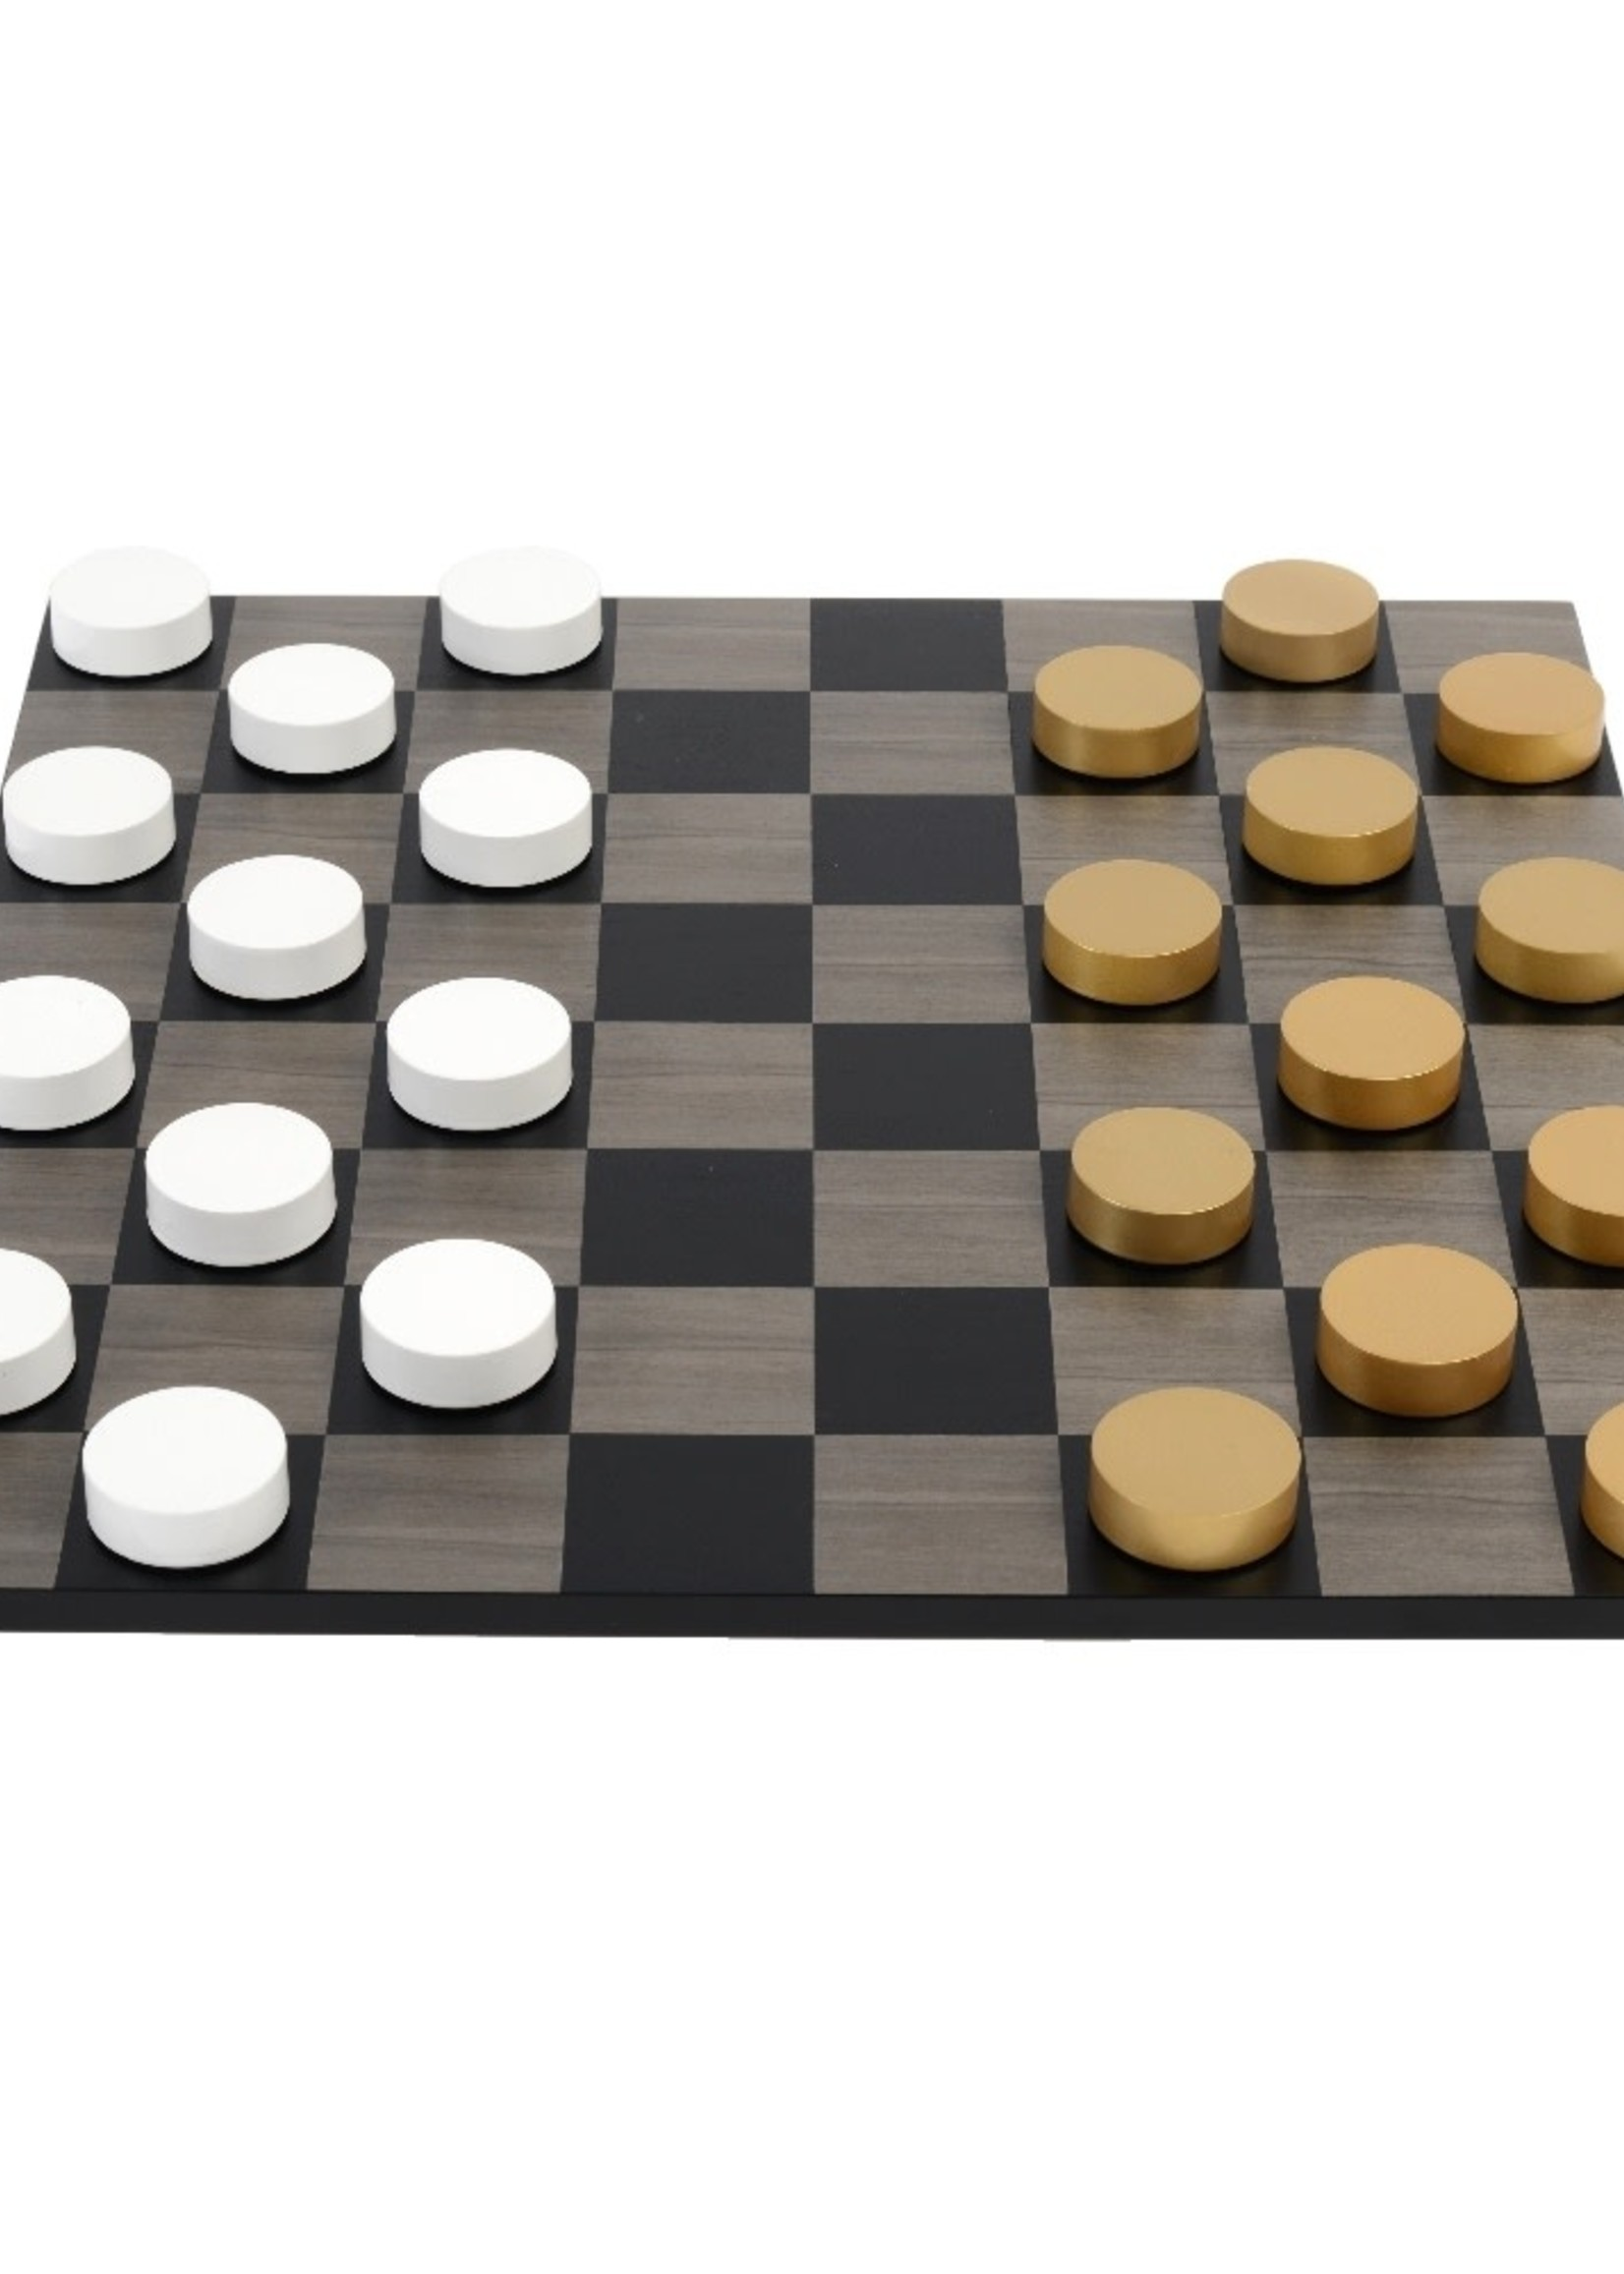 Purling London Purling London Bold Checkers Grey Stained Maple: Metallic Gold. v. Gloss White